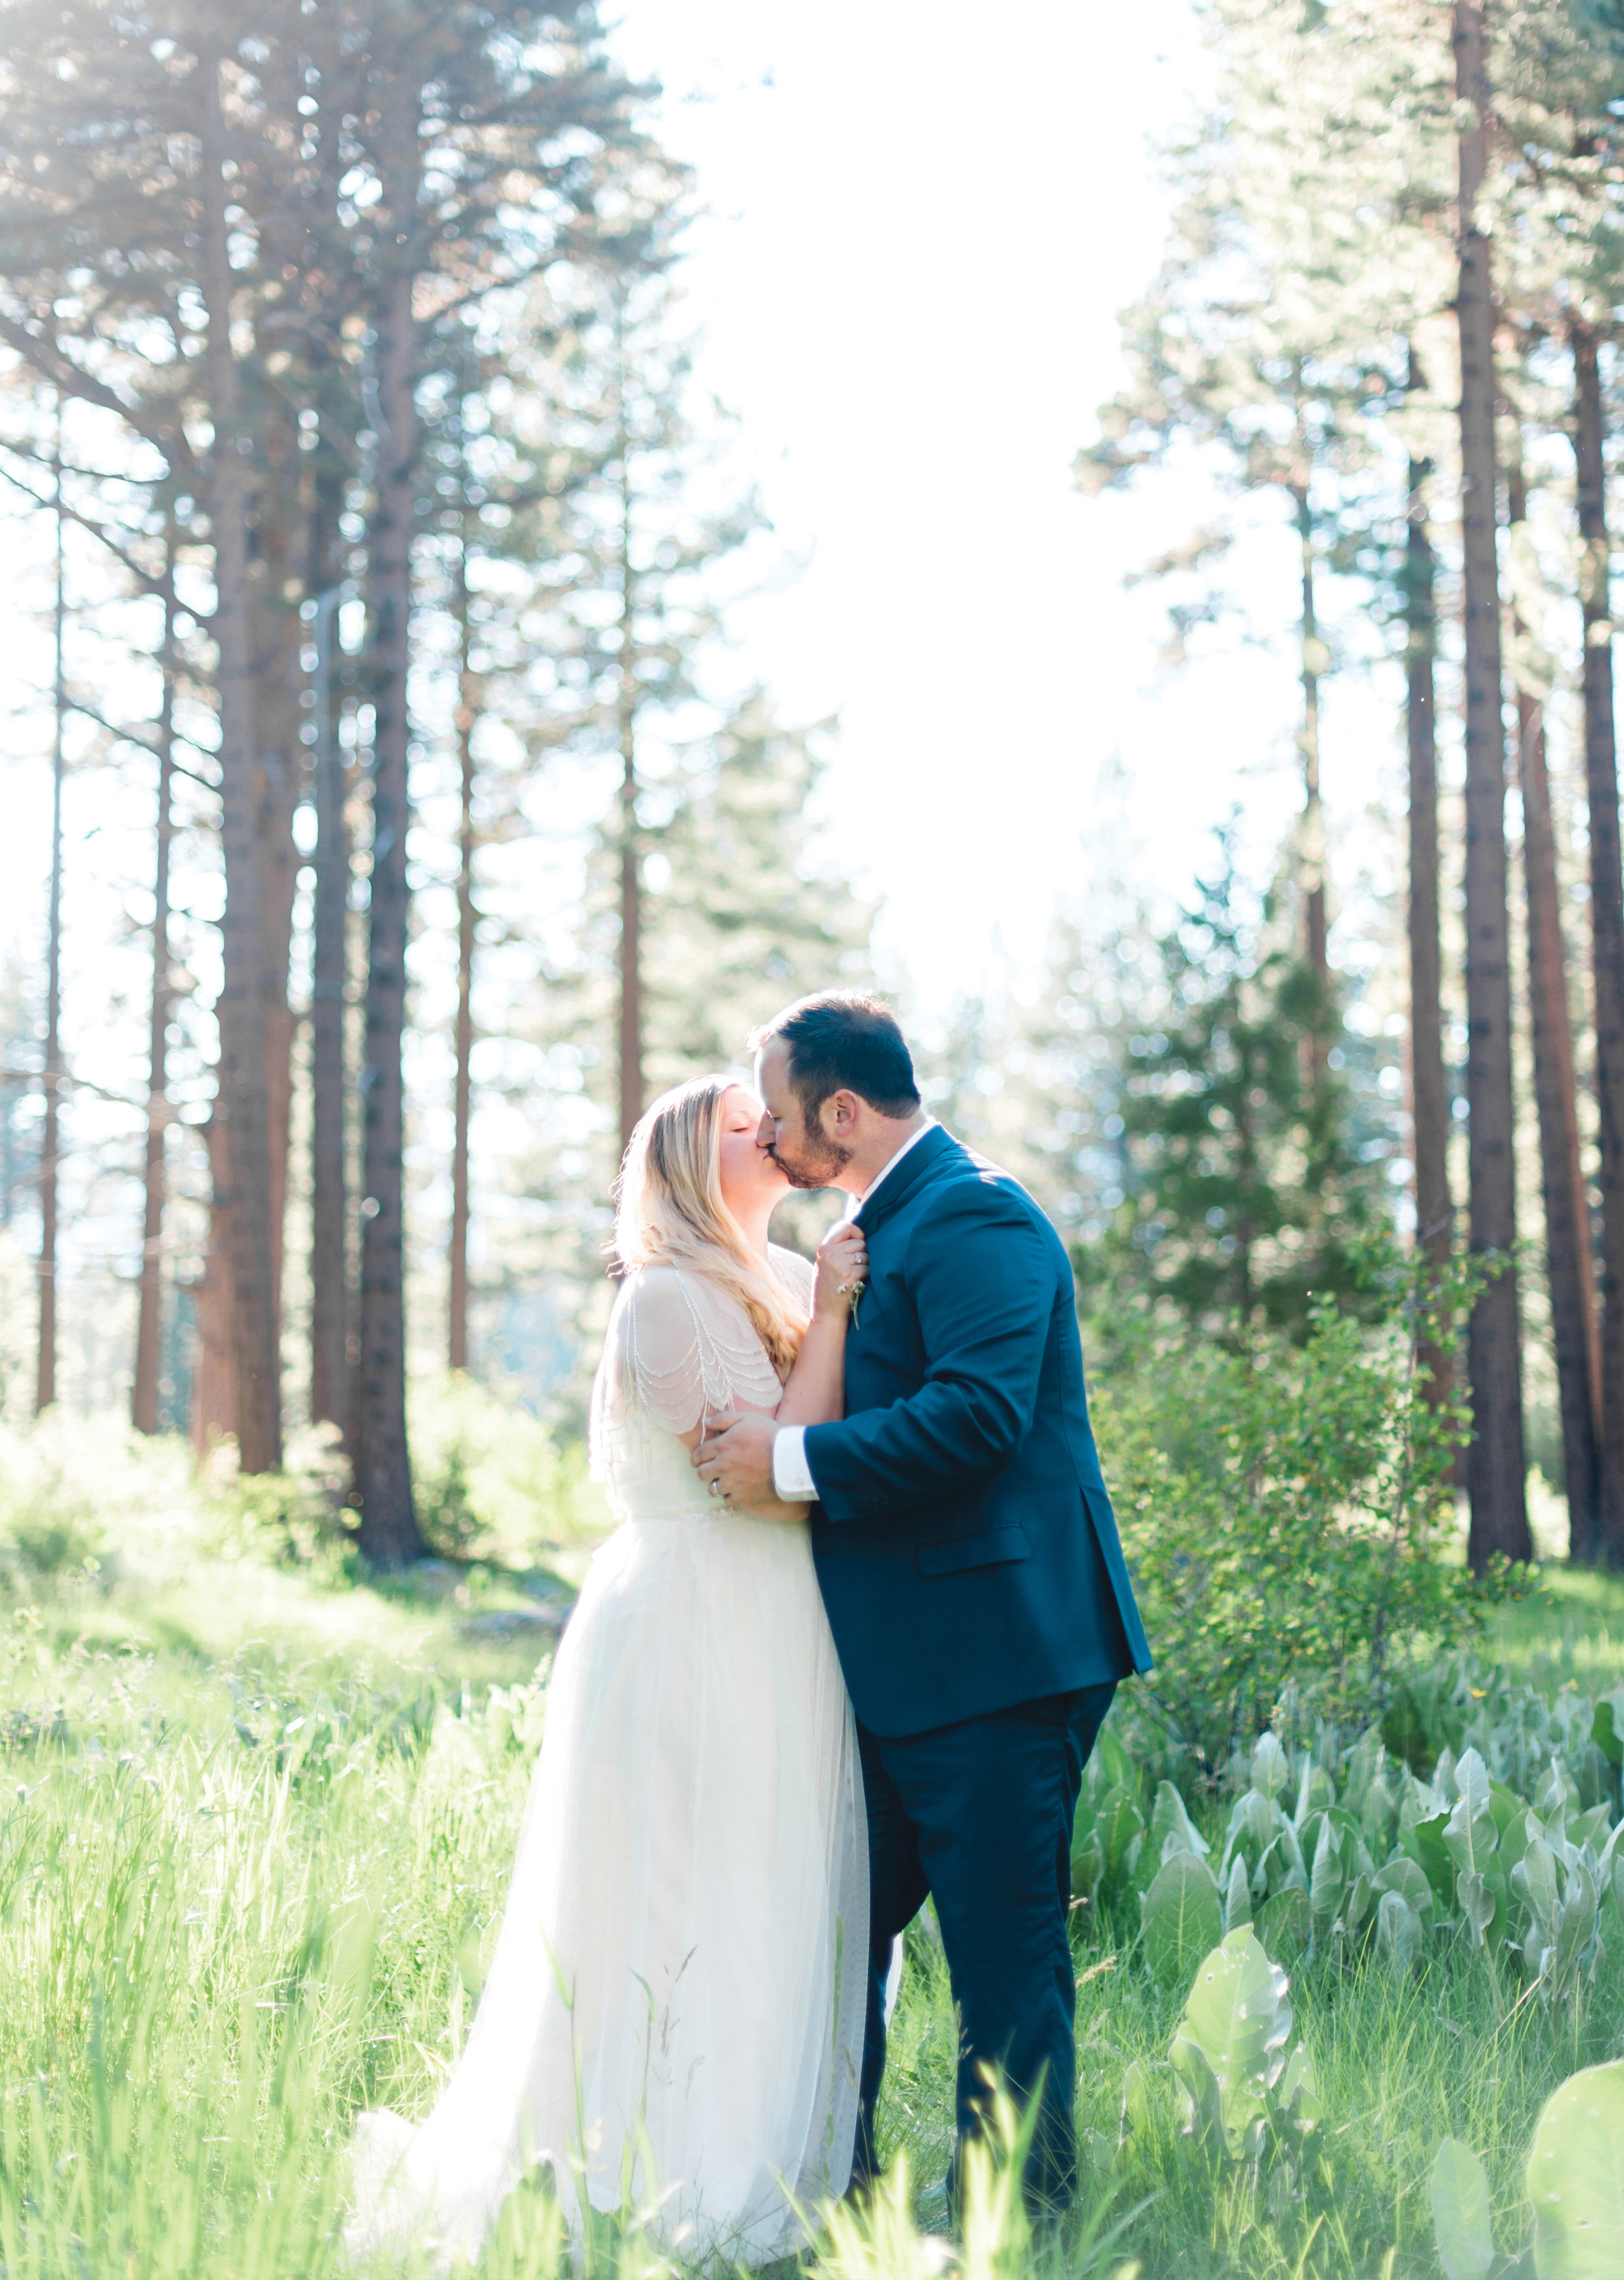 / WELCOME / - We are so happy you are here! We are lovers of light, and specialize in creating beautiful and timeless photographs for our couples that will be just as beautiful on their 50th anniversary as they are today.